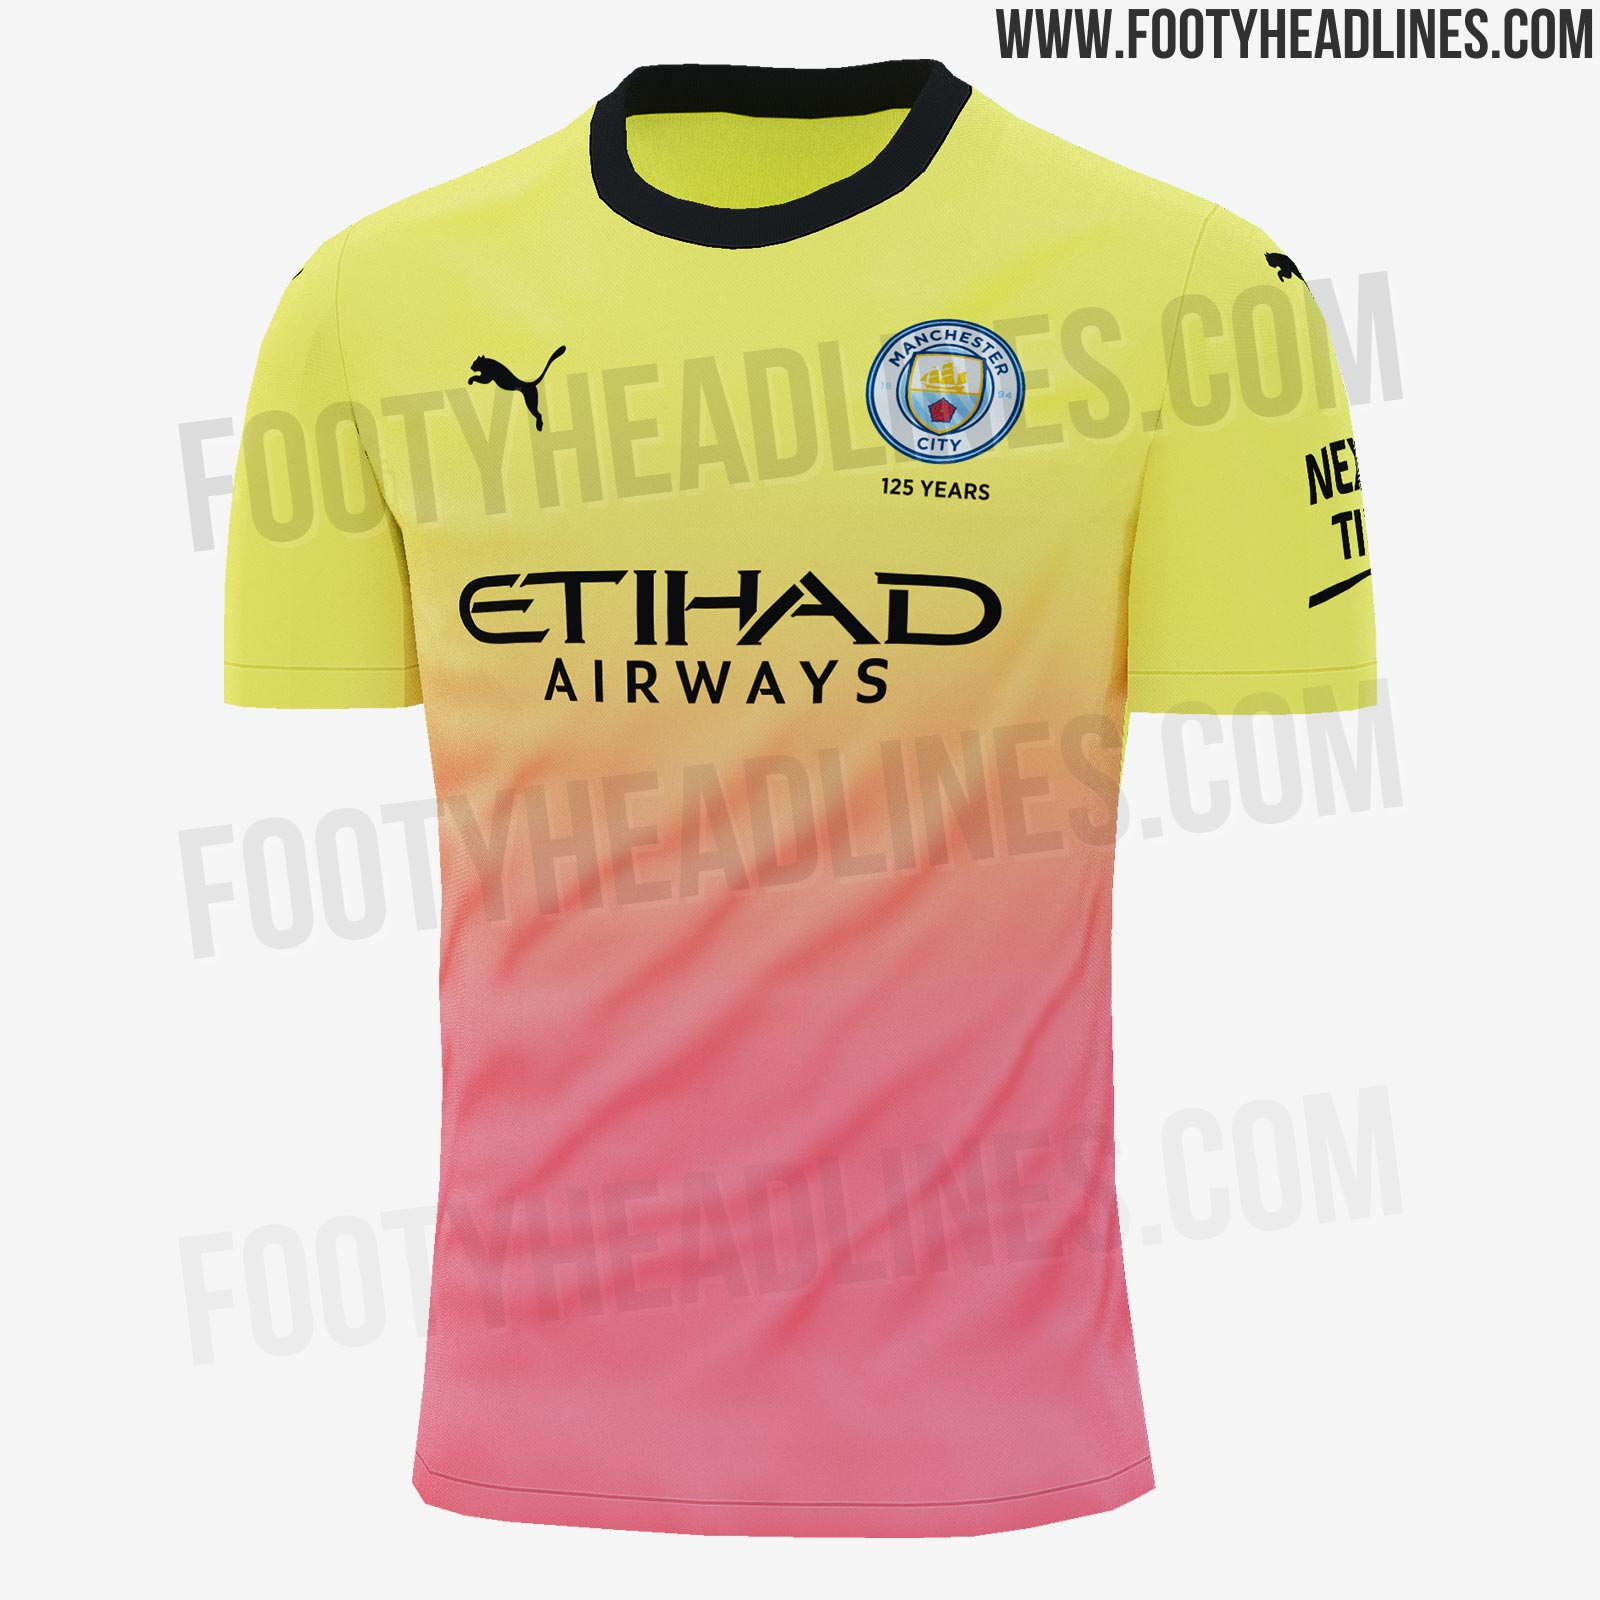 737cfb713 Finally, the Manchester City 2019-20 third jersey is predominantly yellow  ('fizzy yellow') fading into peach at the bottom. The shorts and socks of  the Man ...